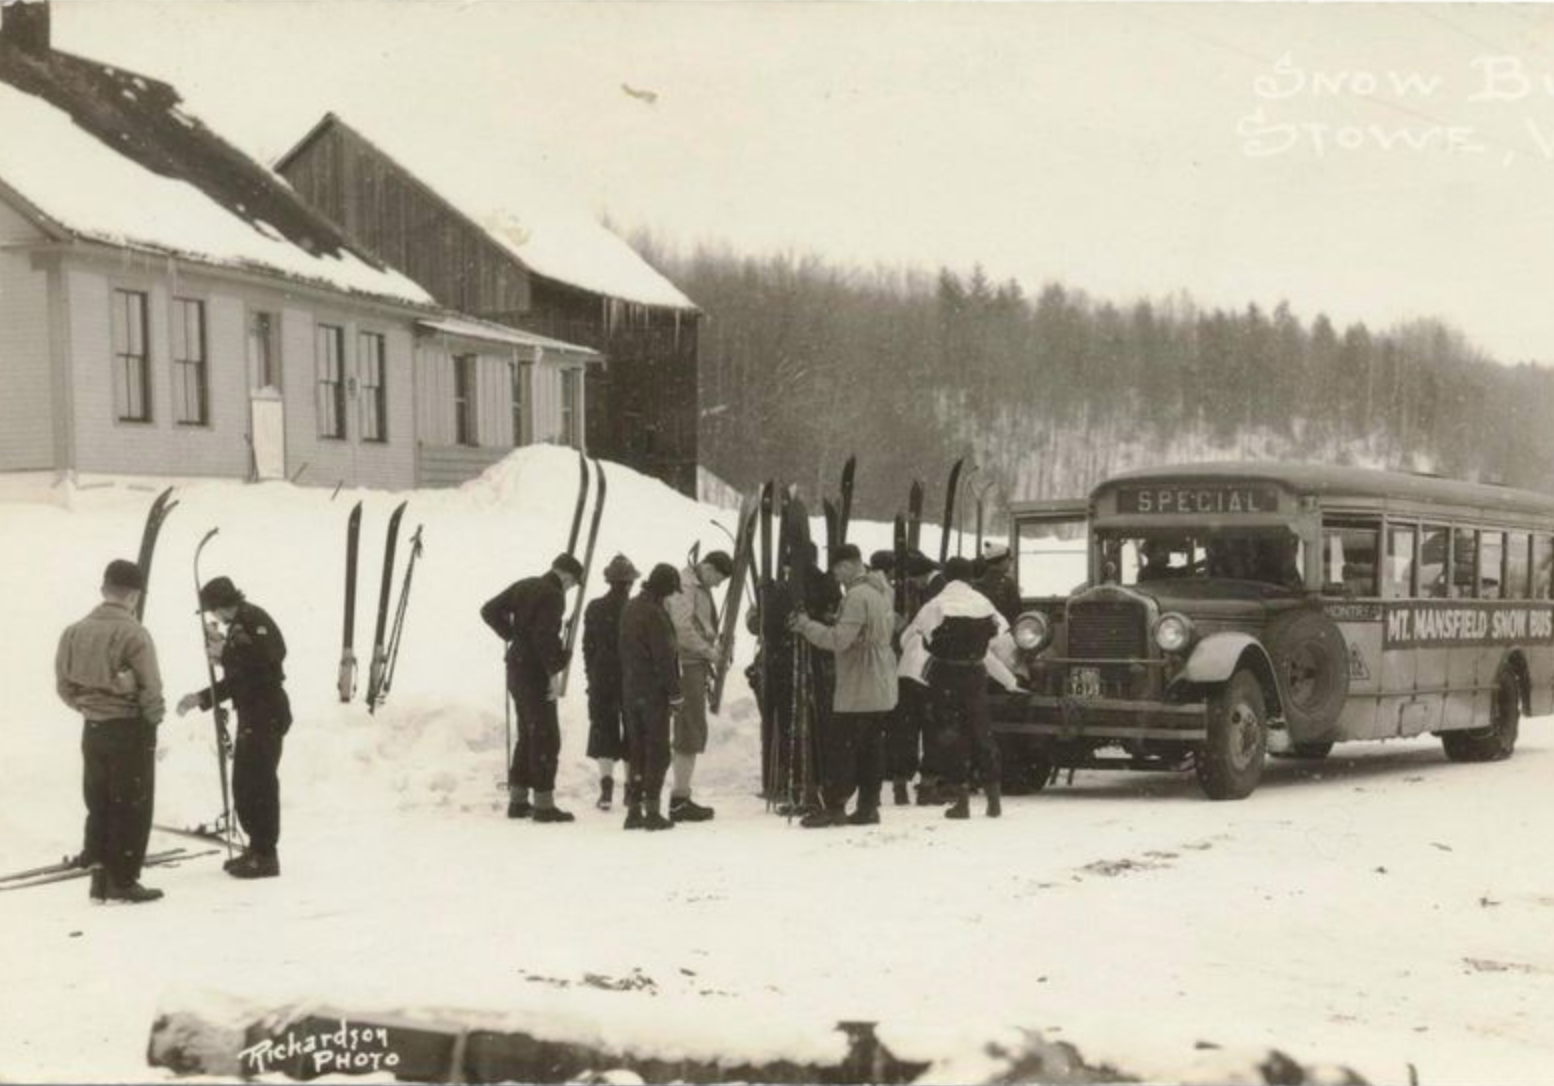 A black-and-white photo of people getting off a bus with skis.